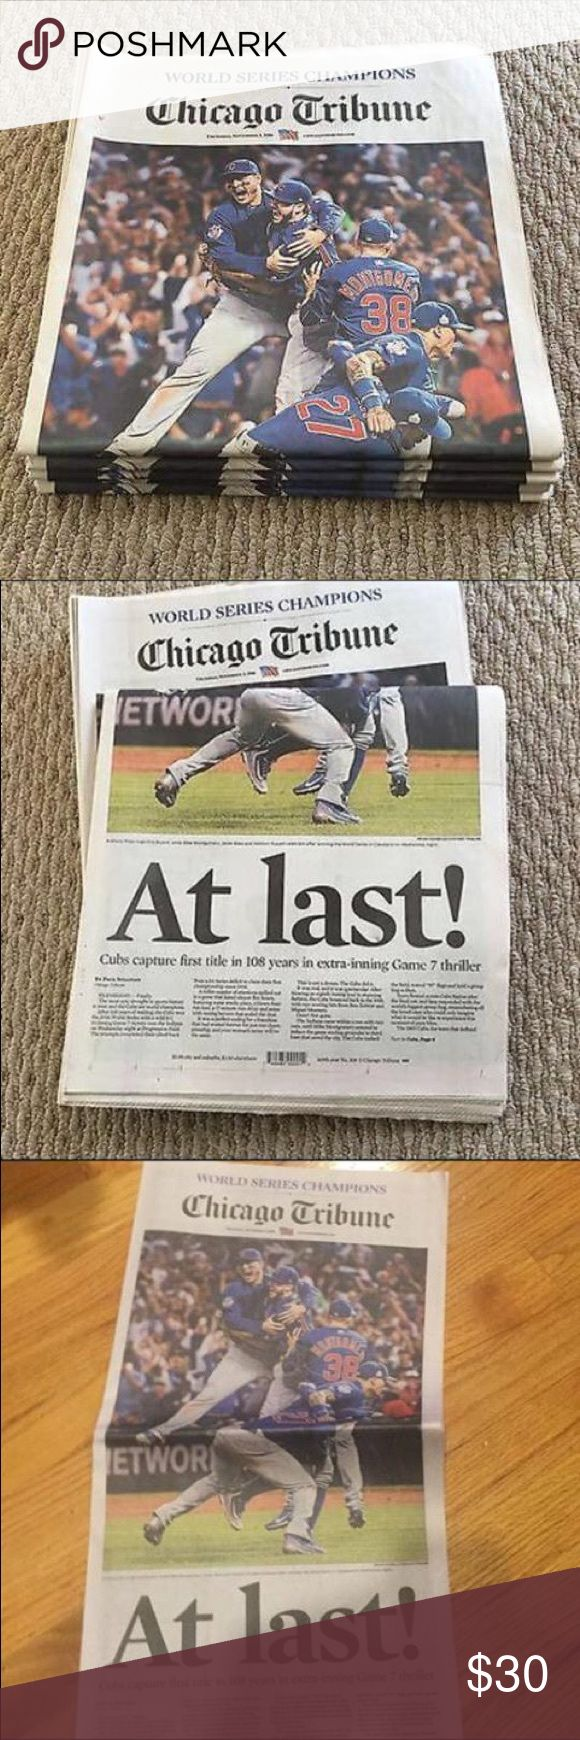 OFFICIAL 2016 Chicago CUBS World Series Newspaper Brand-New, never opened or read. This is the Official Game Day Edition print of the Chicago Tribune Newspaper (printed hours after their win on November 3rd, 2016); announcing the Chicago Cubs as the World Series Champions. This is the FULL PAPER. They are in pristine condition and this is definitely a collector's item. This is currently the most popular paper in Chicago. They are EXTREMELY RARE. All stores have SOLD OUT. Accessories